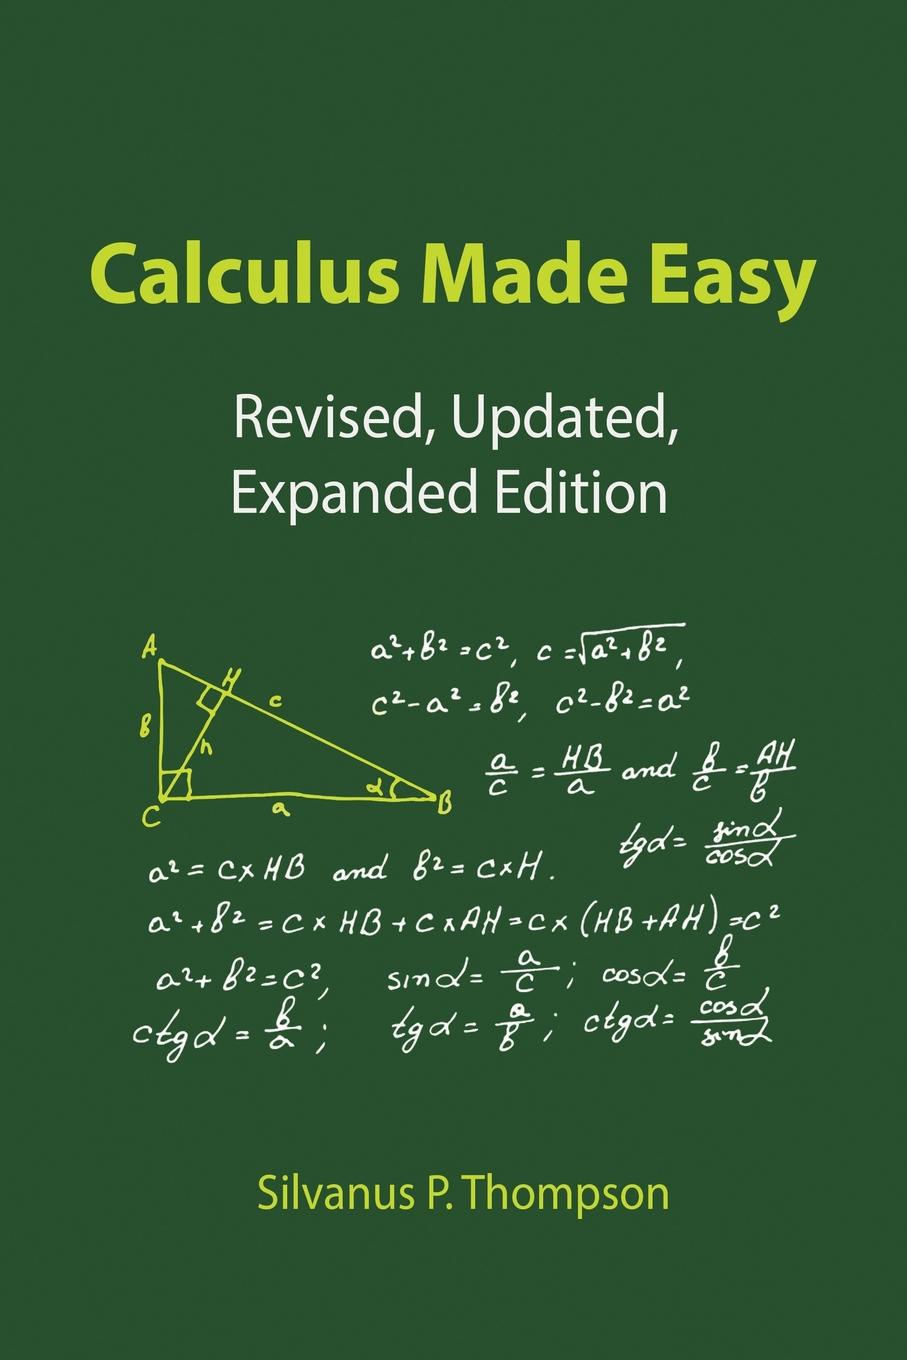 Silvanus P. Thompson. Calculus Made Easy